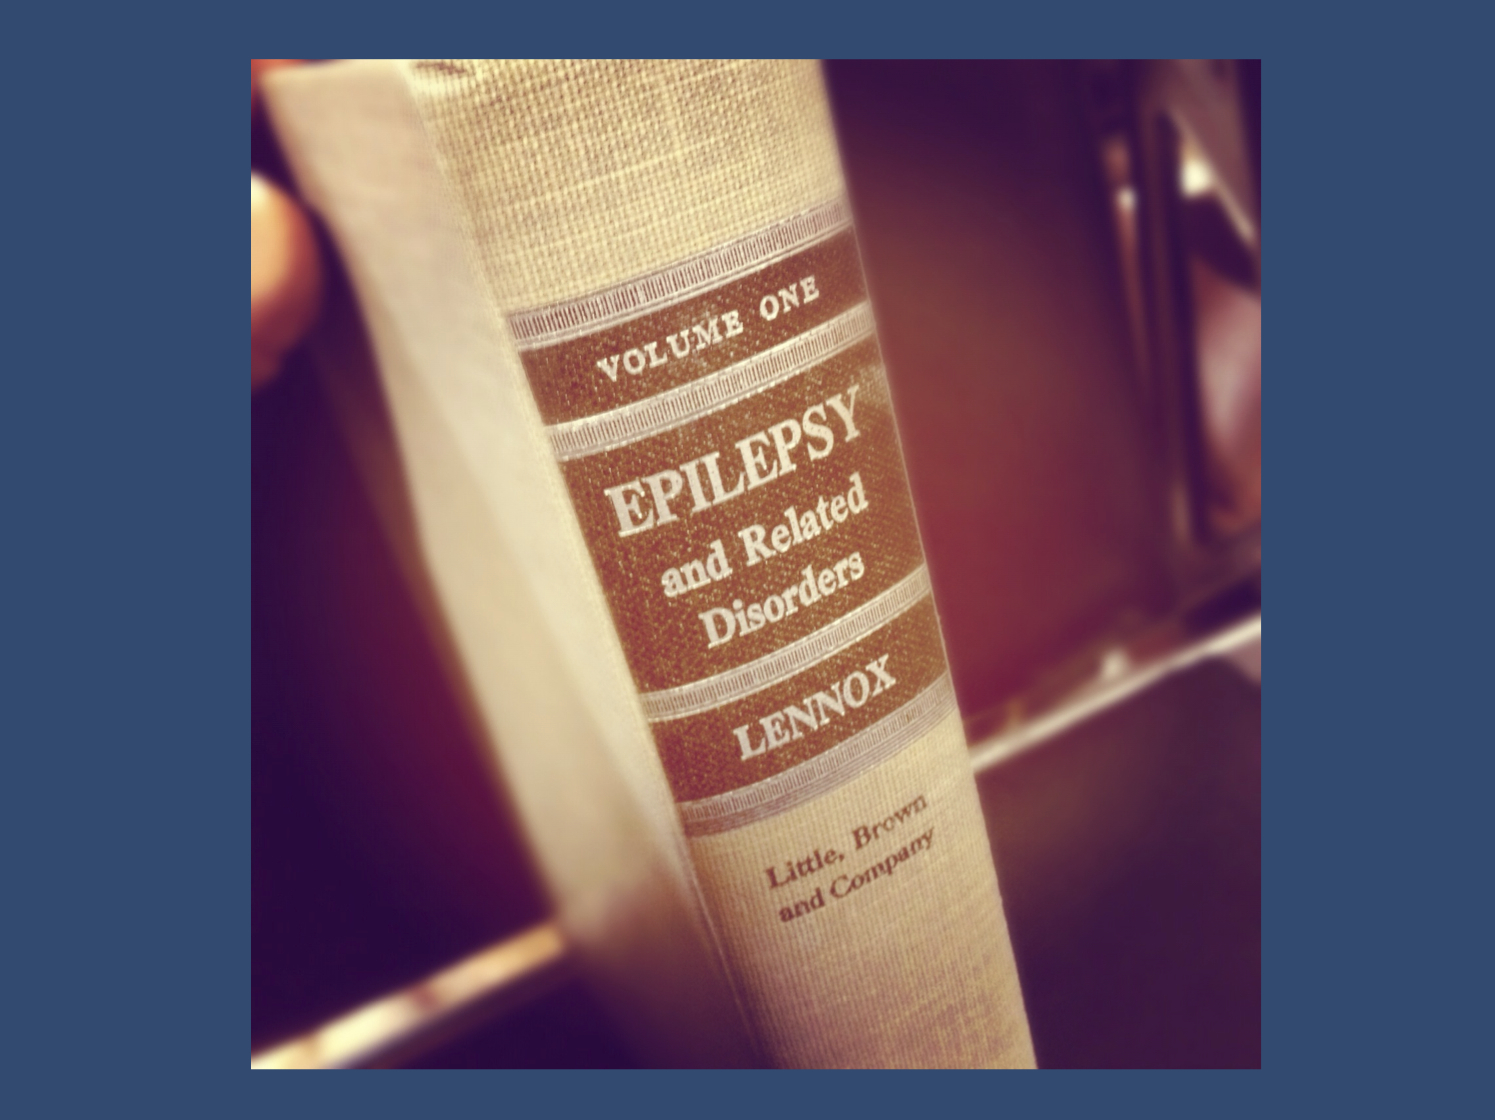 Epilepsy and related disorders is a massive book. One of my anatomy teachers in med school told us that he broke is nose while falling asleep reading a book that dropped down on him. Lennox's opus definitely falls into this category.